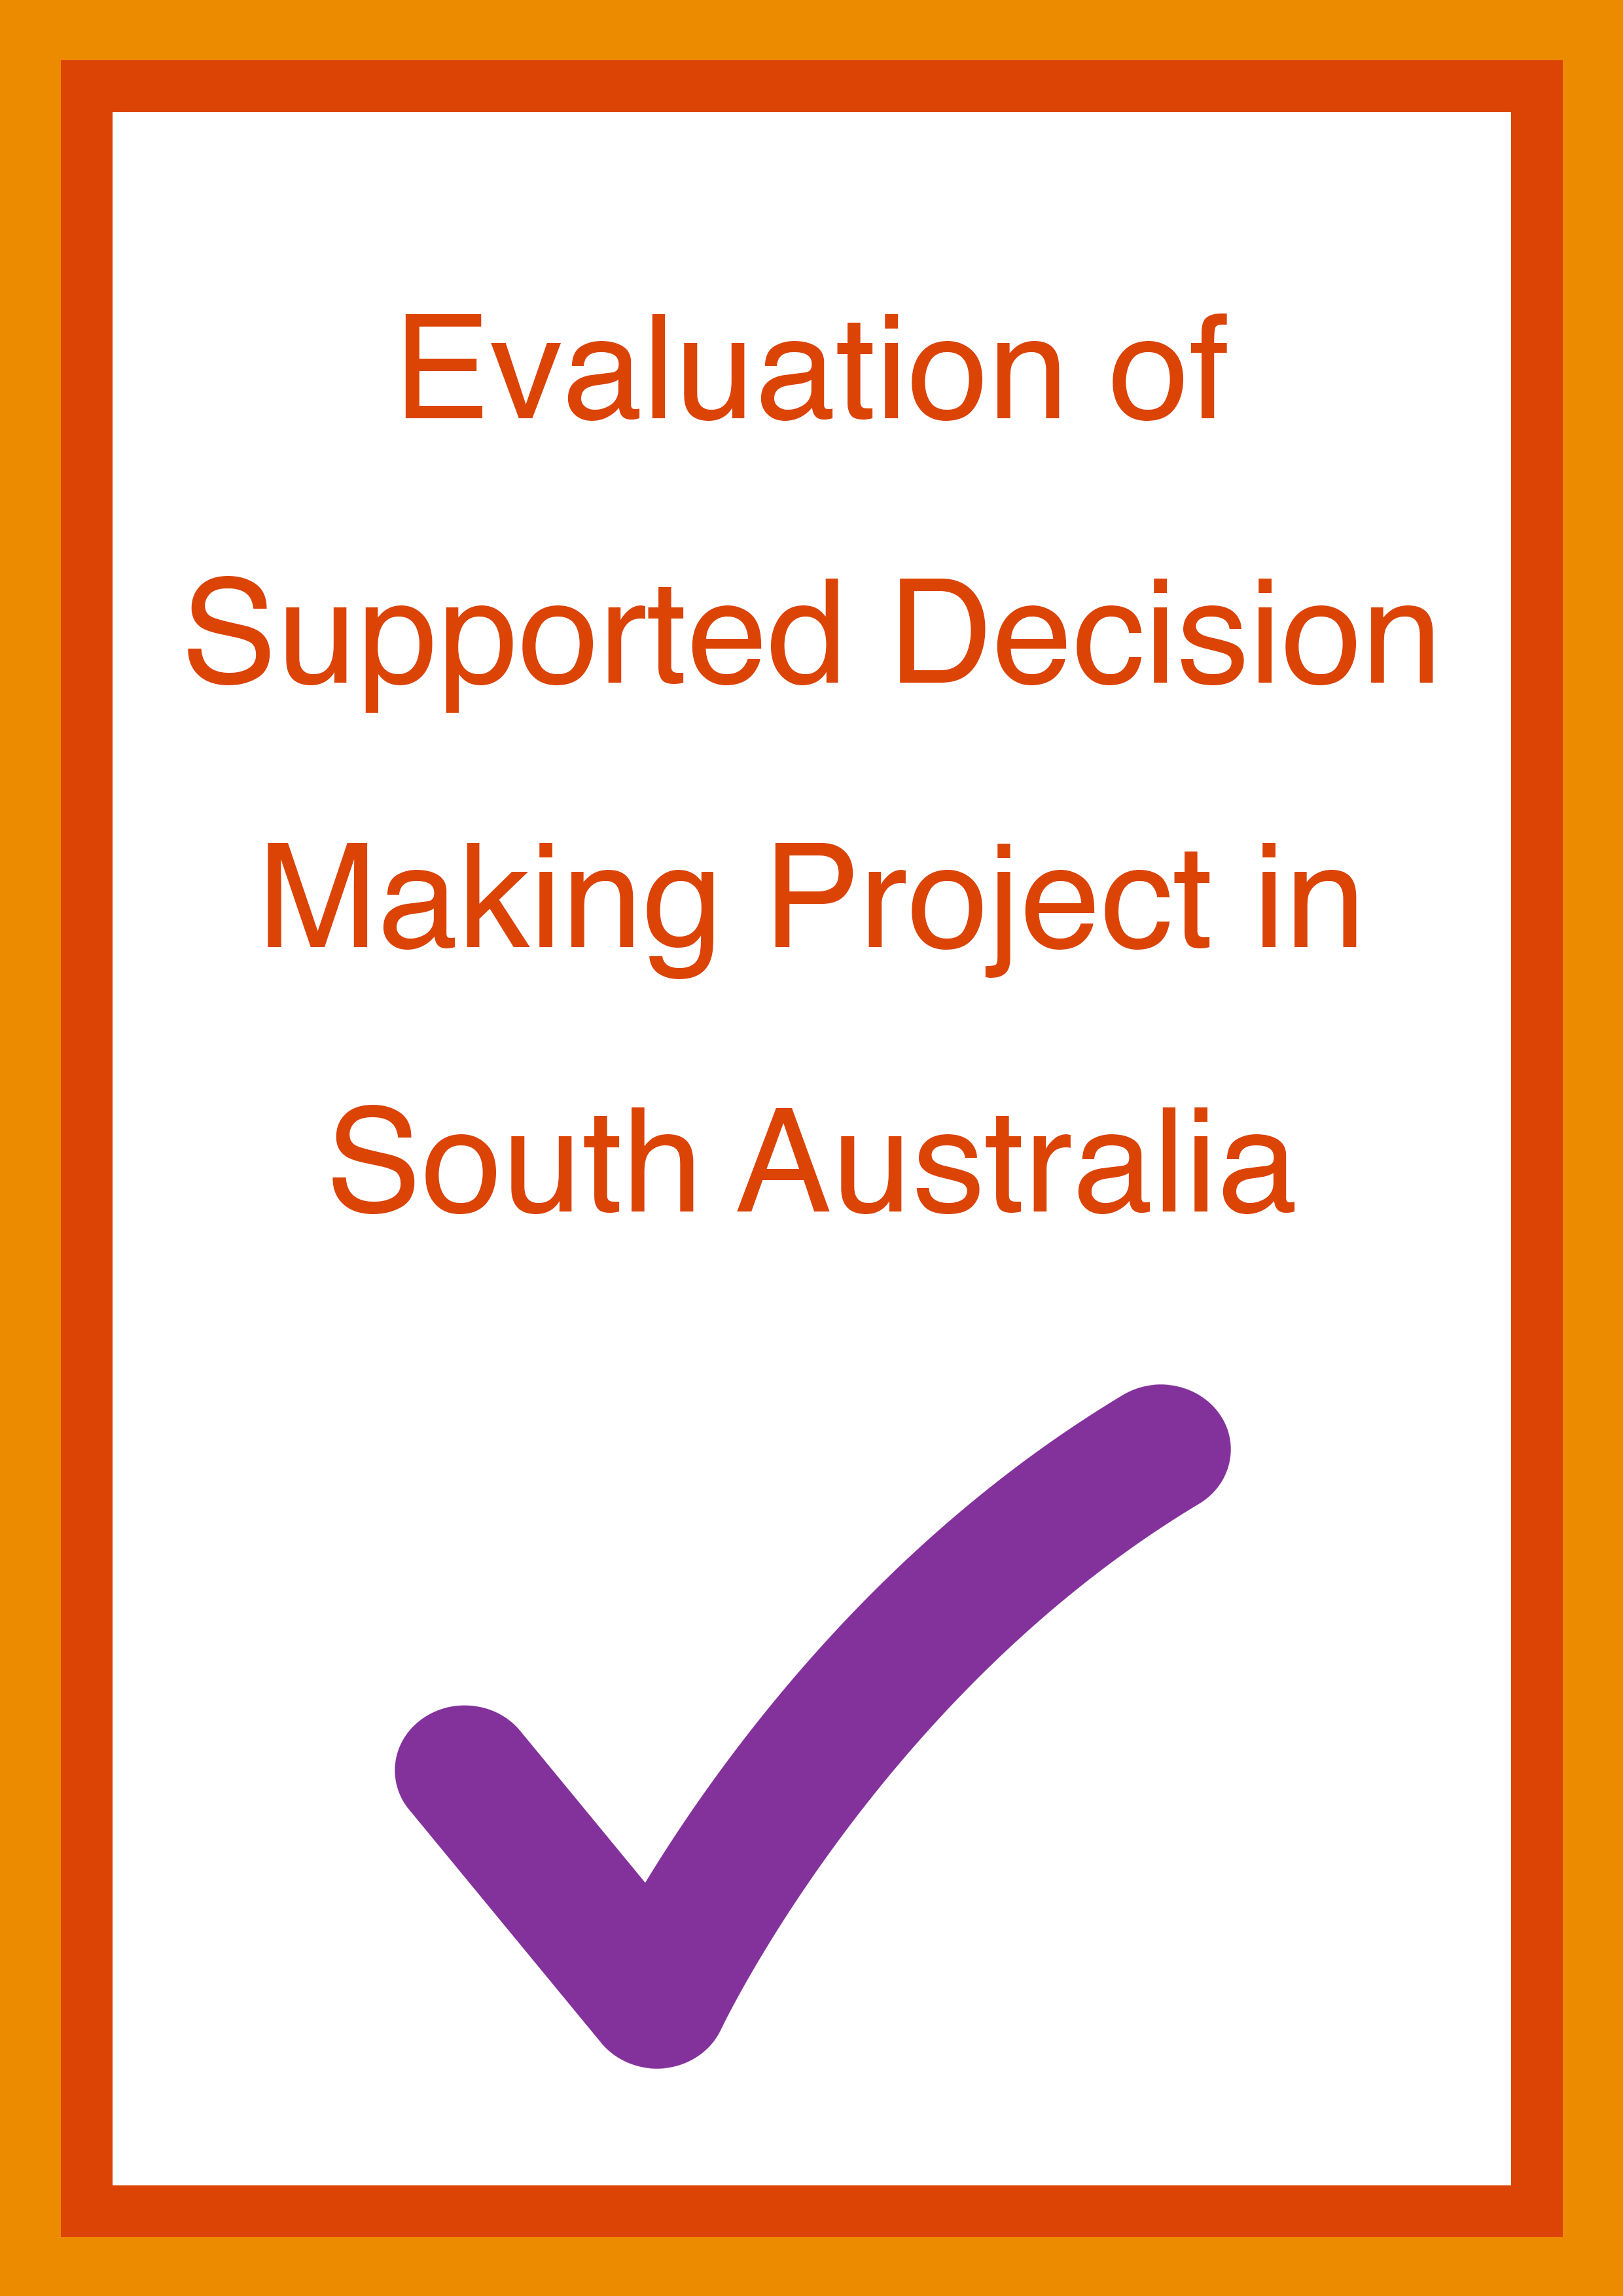 Cover art for: Evaluation of Supported Decision Making Project in SA